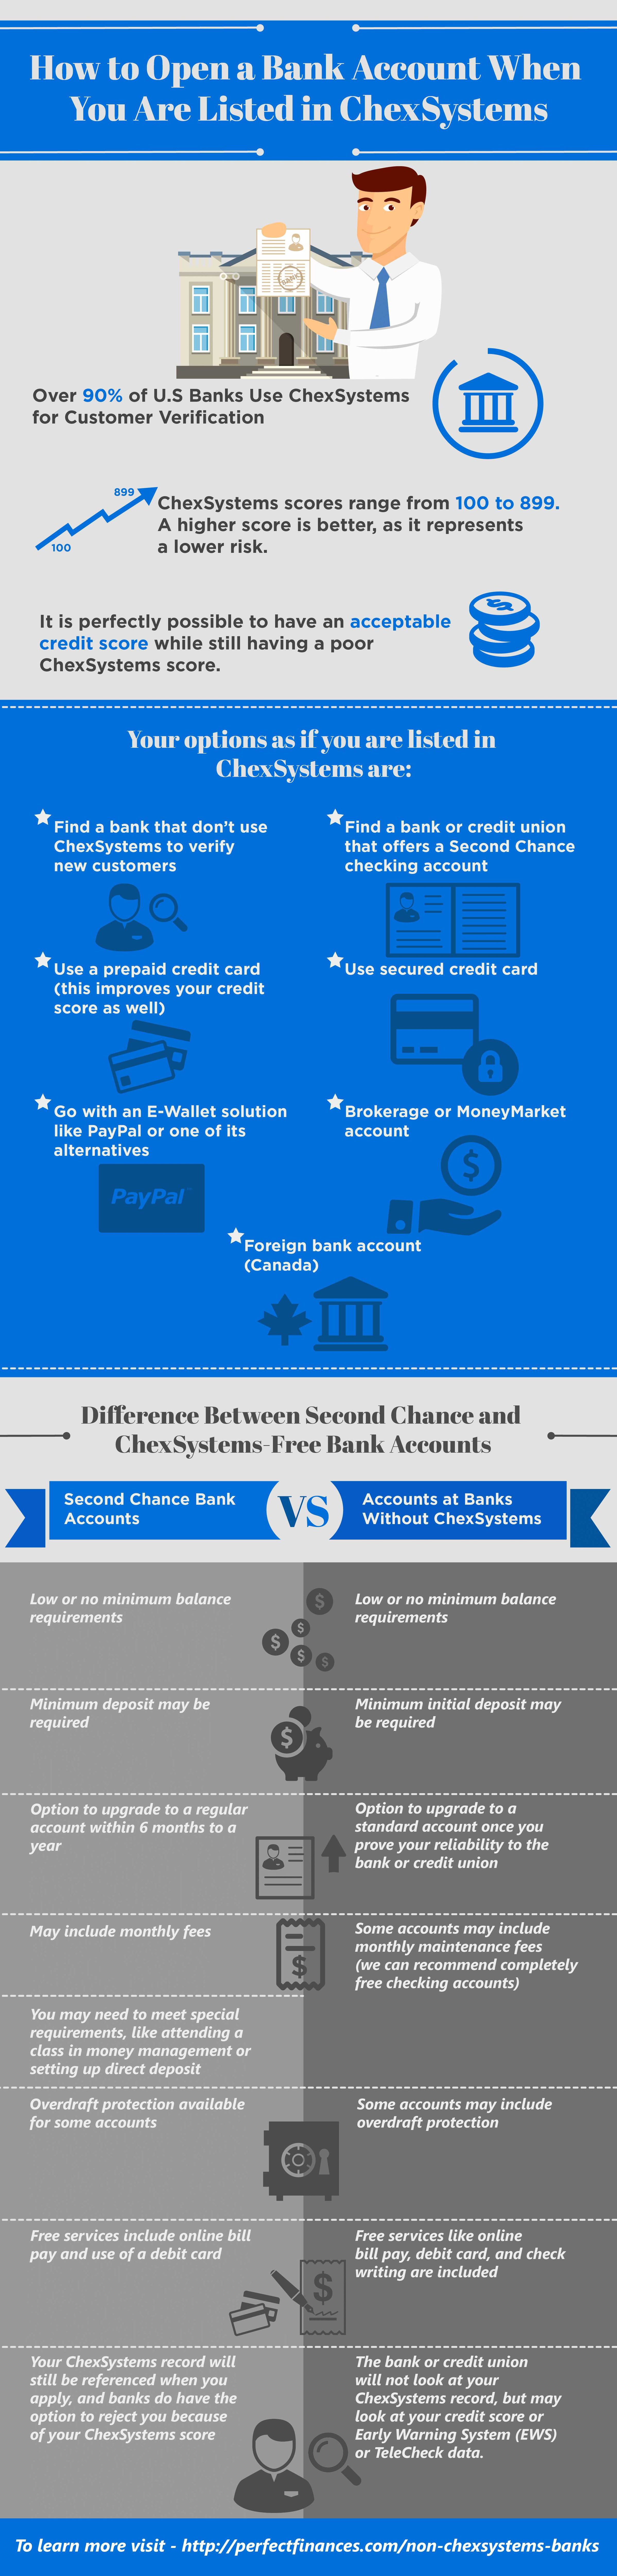 Credit Unions That Don T Use Chexsystems Near Me : credit, unions, chexsystems, Https://perfectfinances.com/non-chexsystems-banks, Perfectly, Possible, Acceptable, Credit, Score, Opening, Account,, Score,, Account